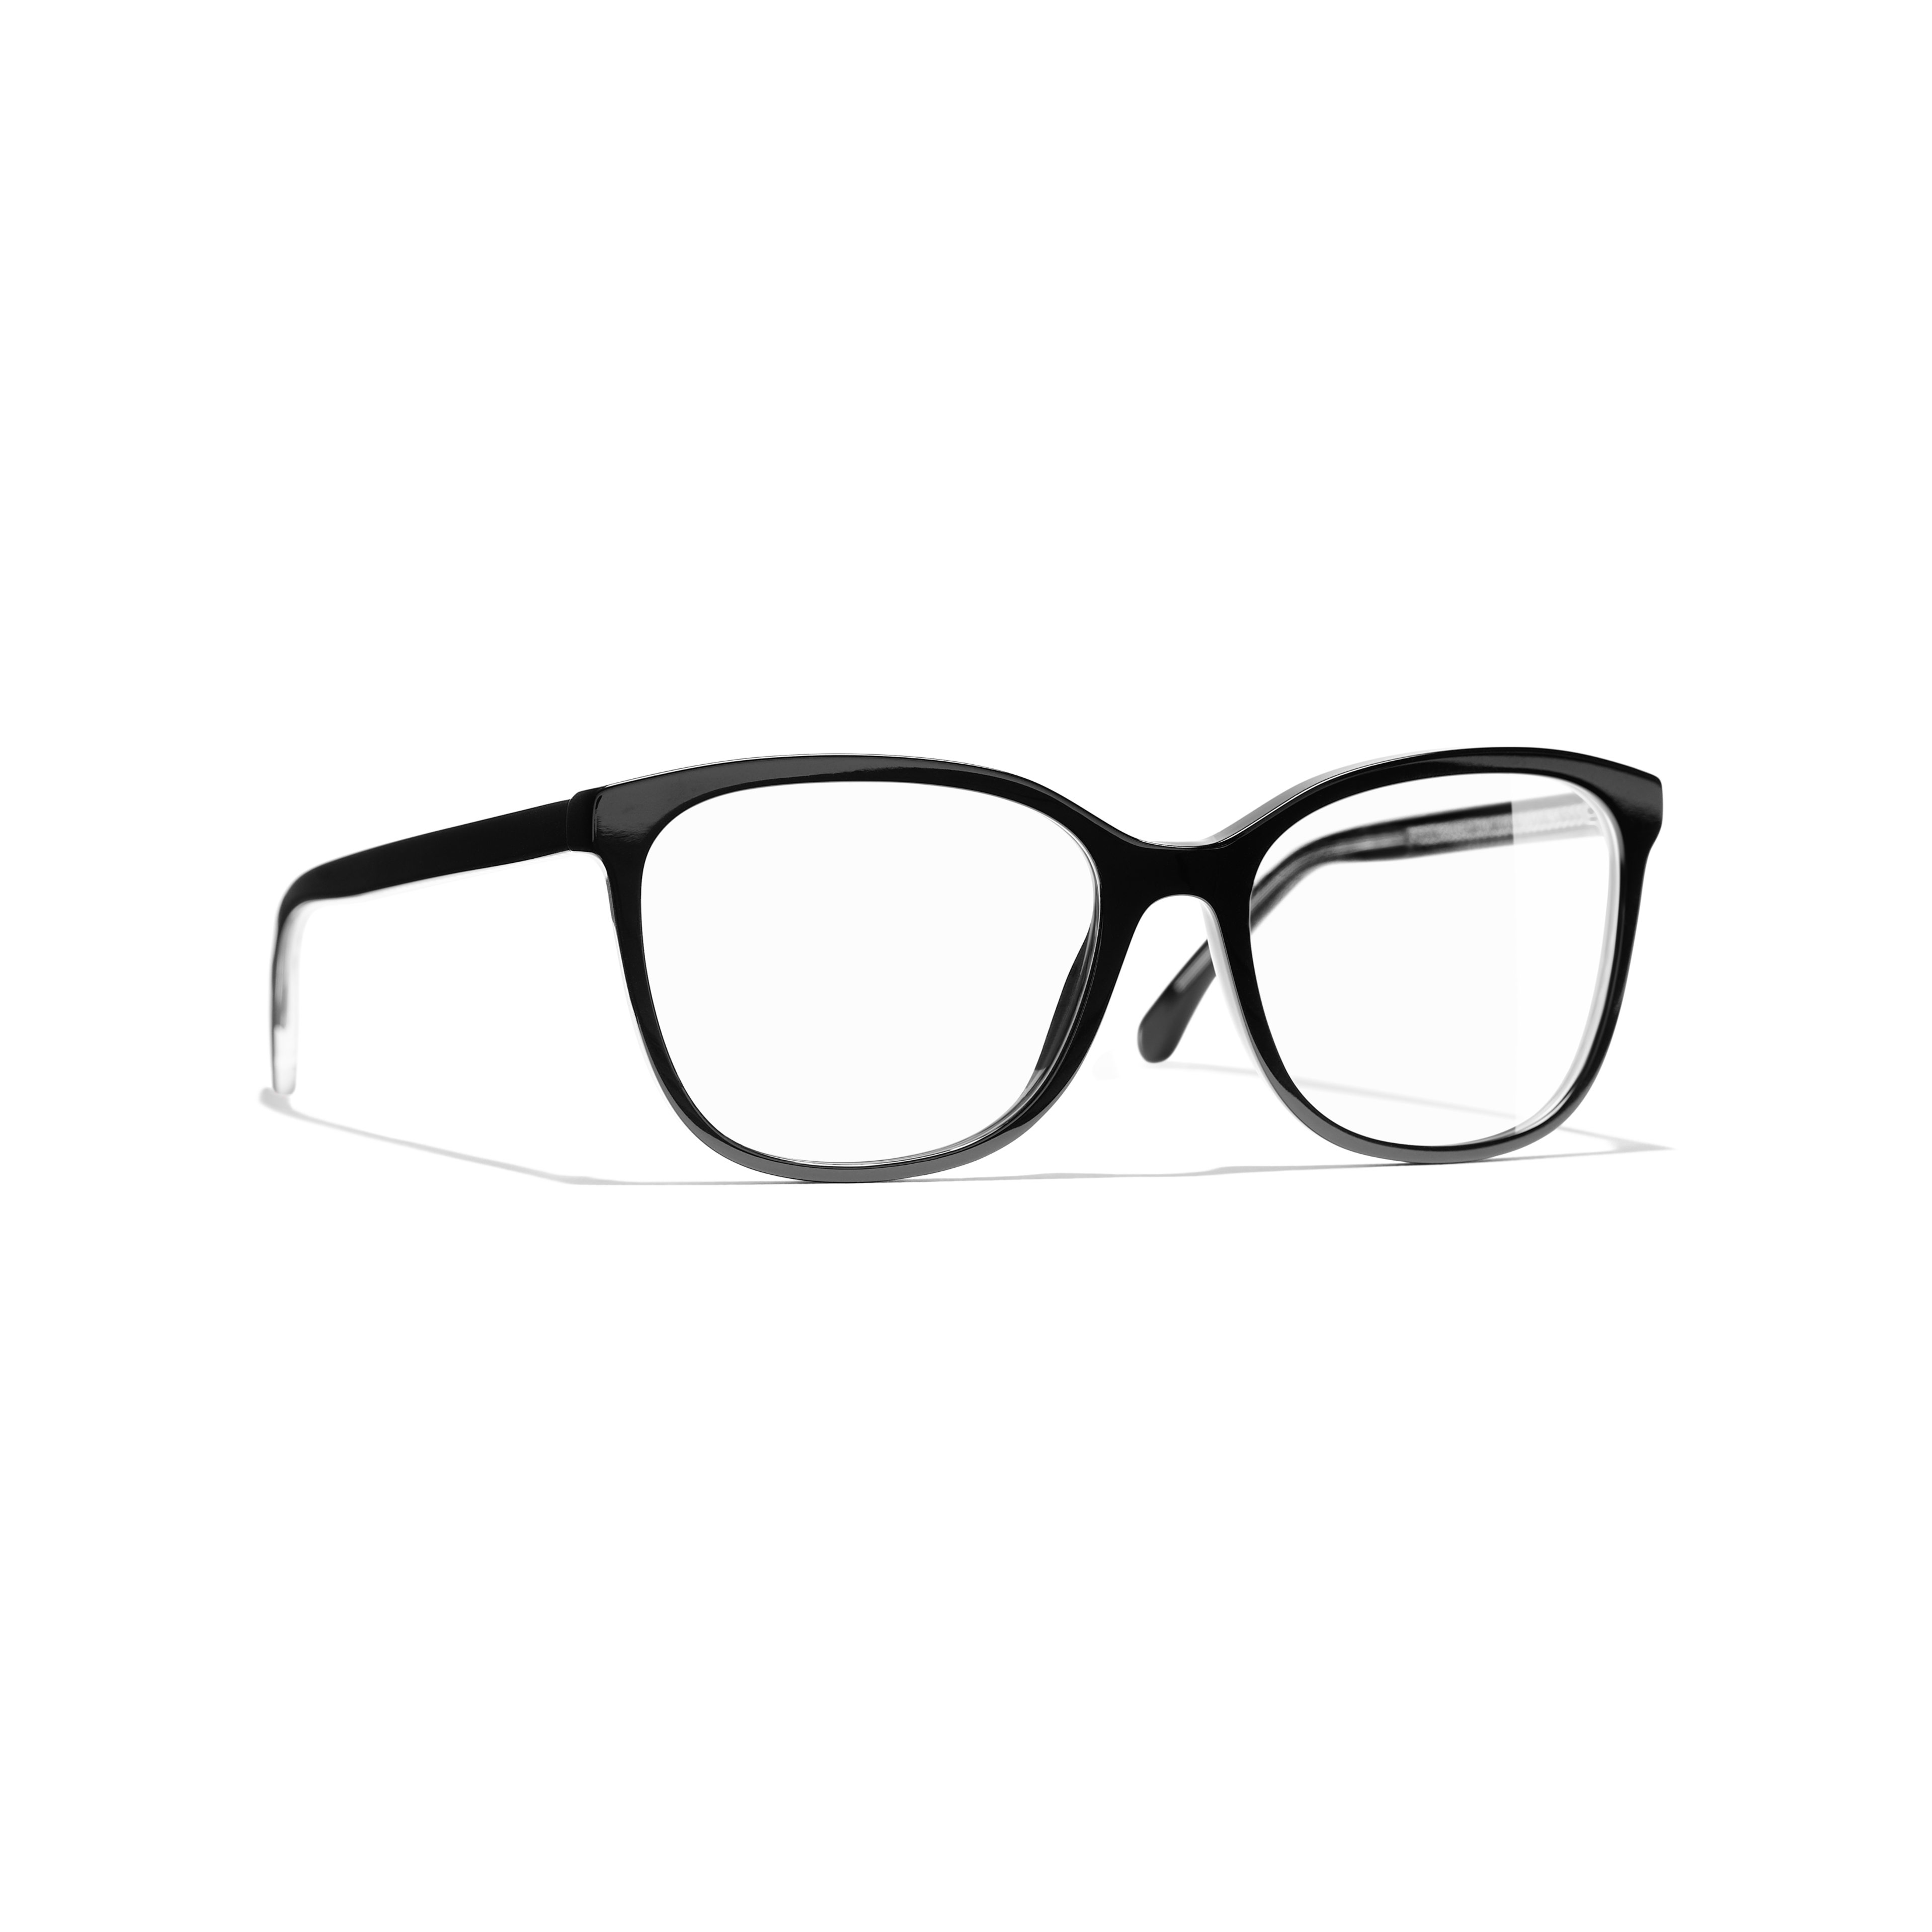 Rectangle Eyeglasses - Black - Acetate & Metal - CHANEL - Default view - see standard sized version